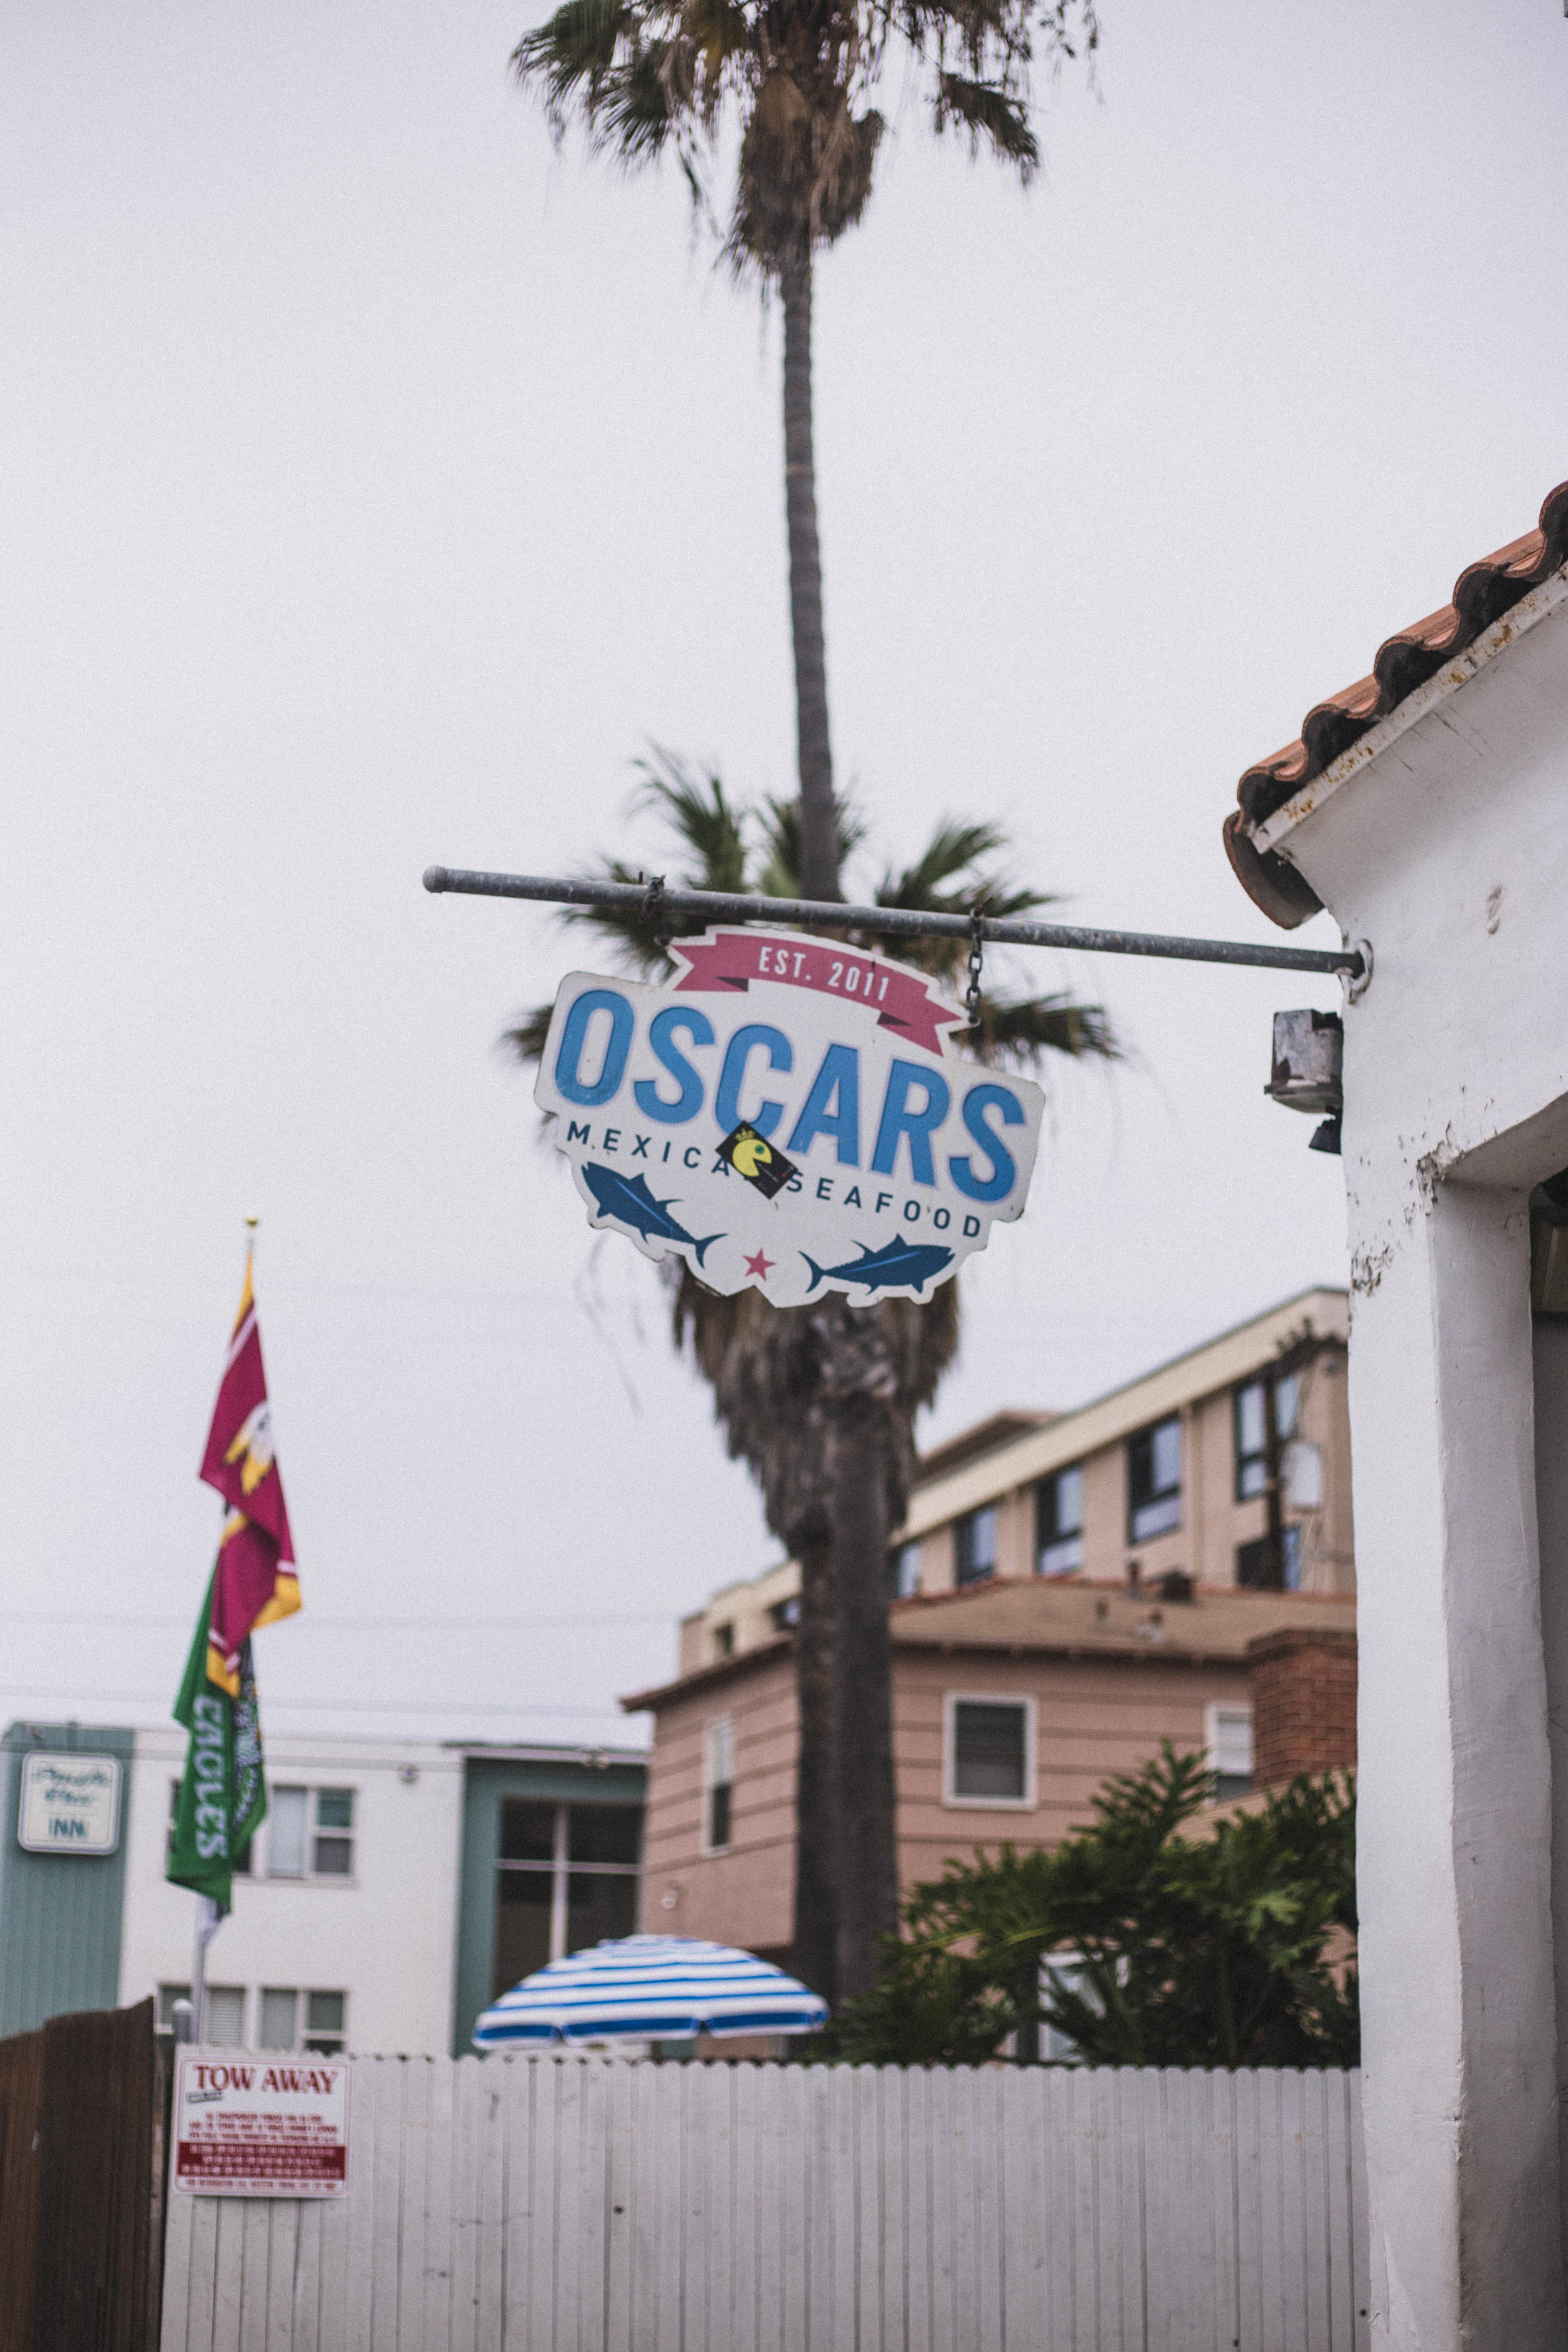 Oscars Mexican Seafood in Pacific Beach (San Diego City Guide)